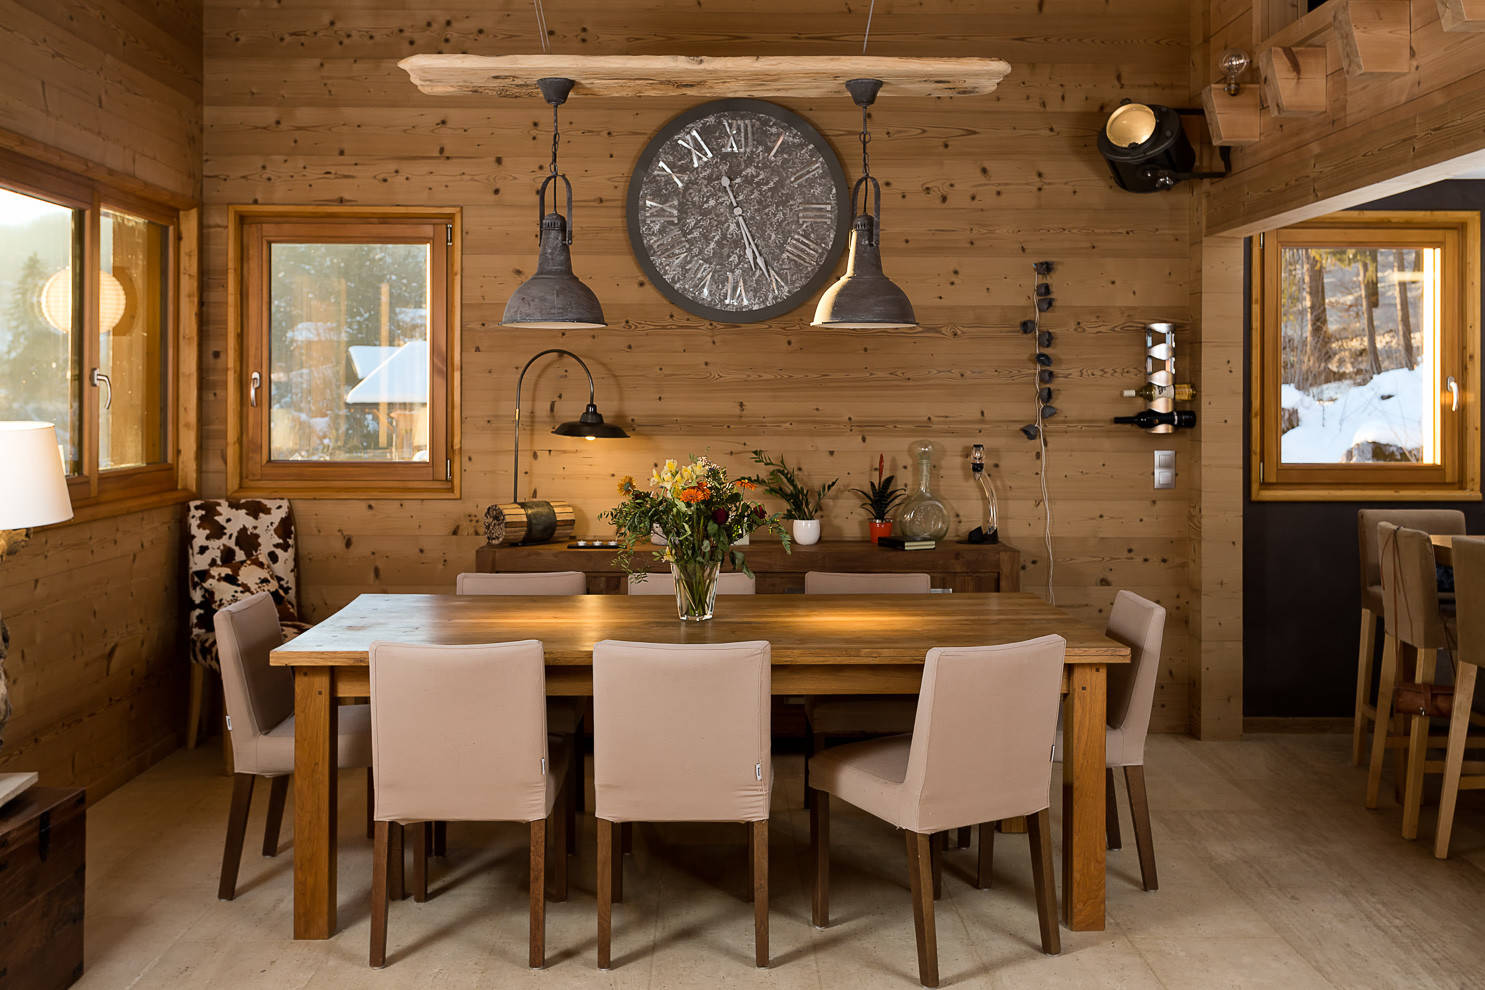 16 majestic rustic dining room designs you can t miss out on dining room inspiration id=61343